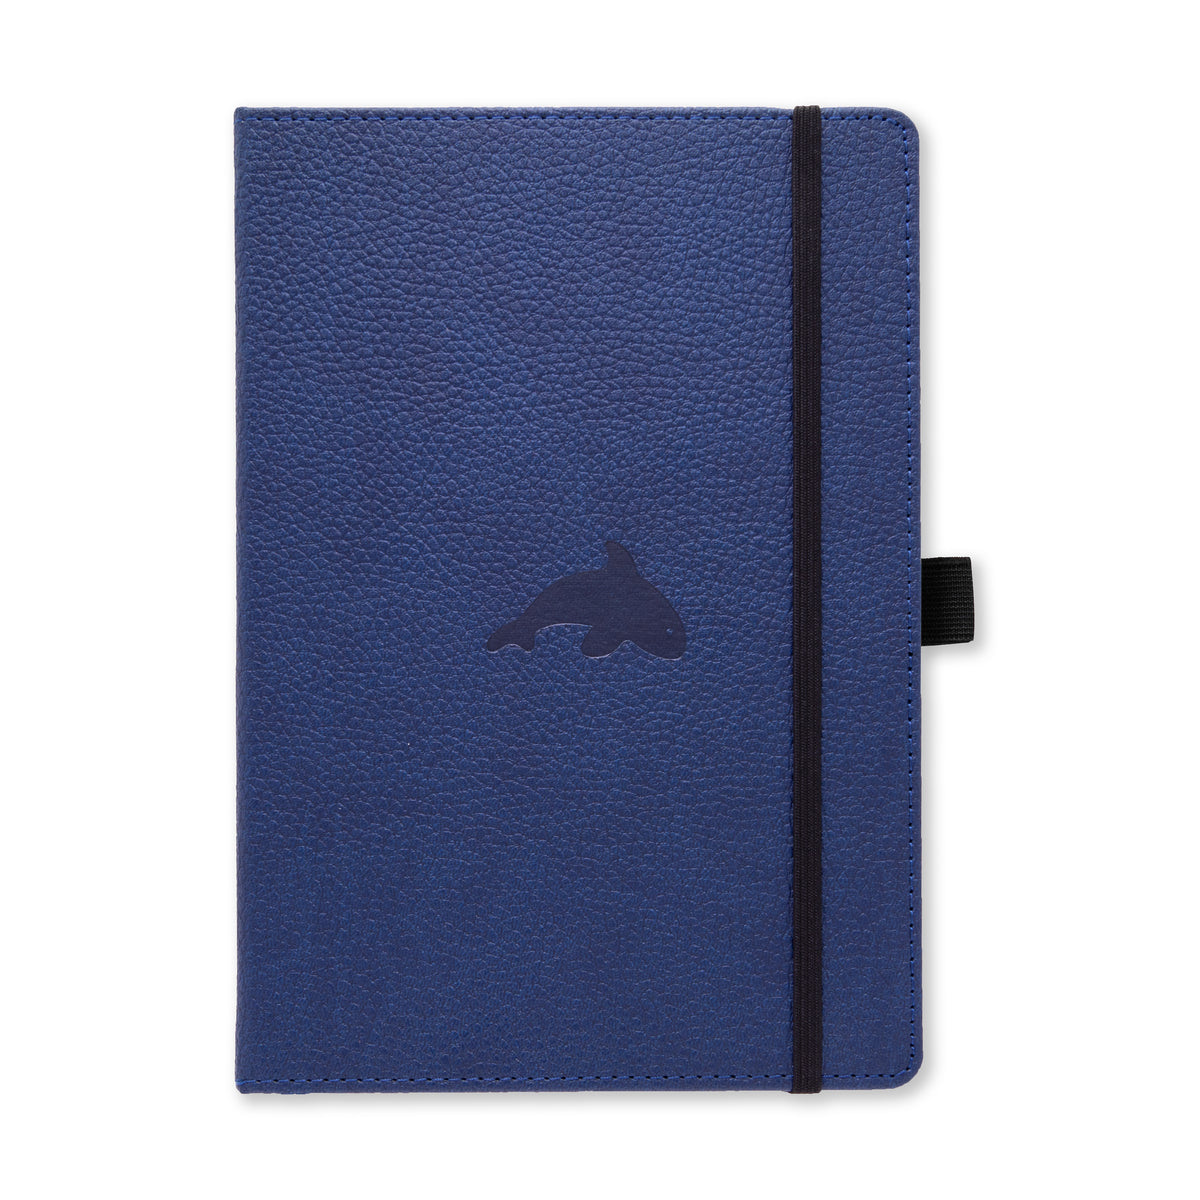 A5+ DOT GRID NOTEBOOK - WILDLIFE COLLECTION - BLUE WHALE